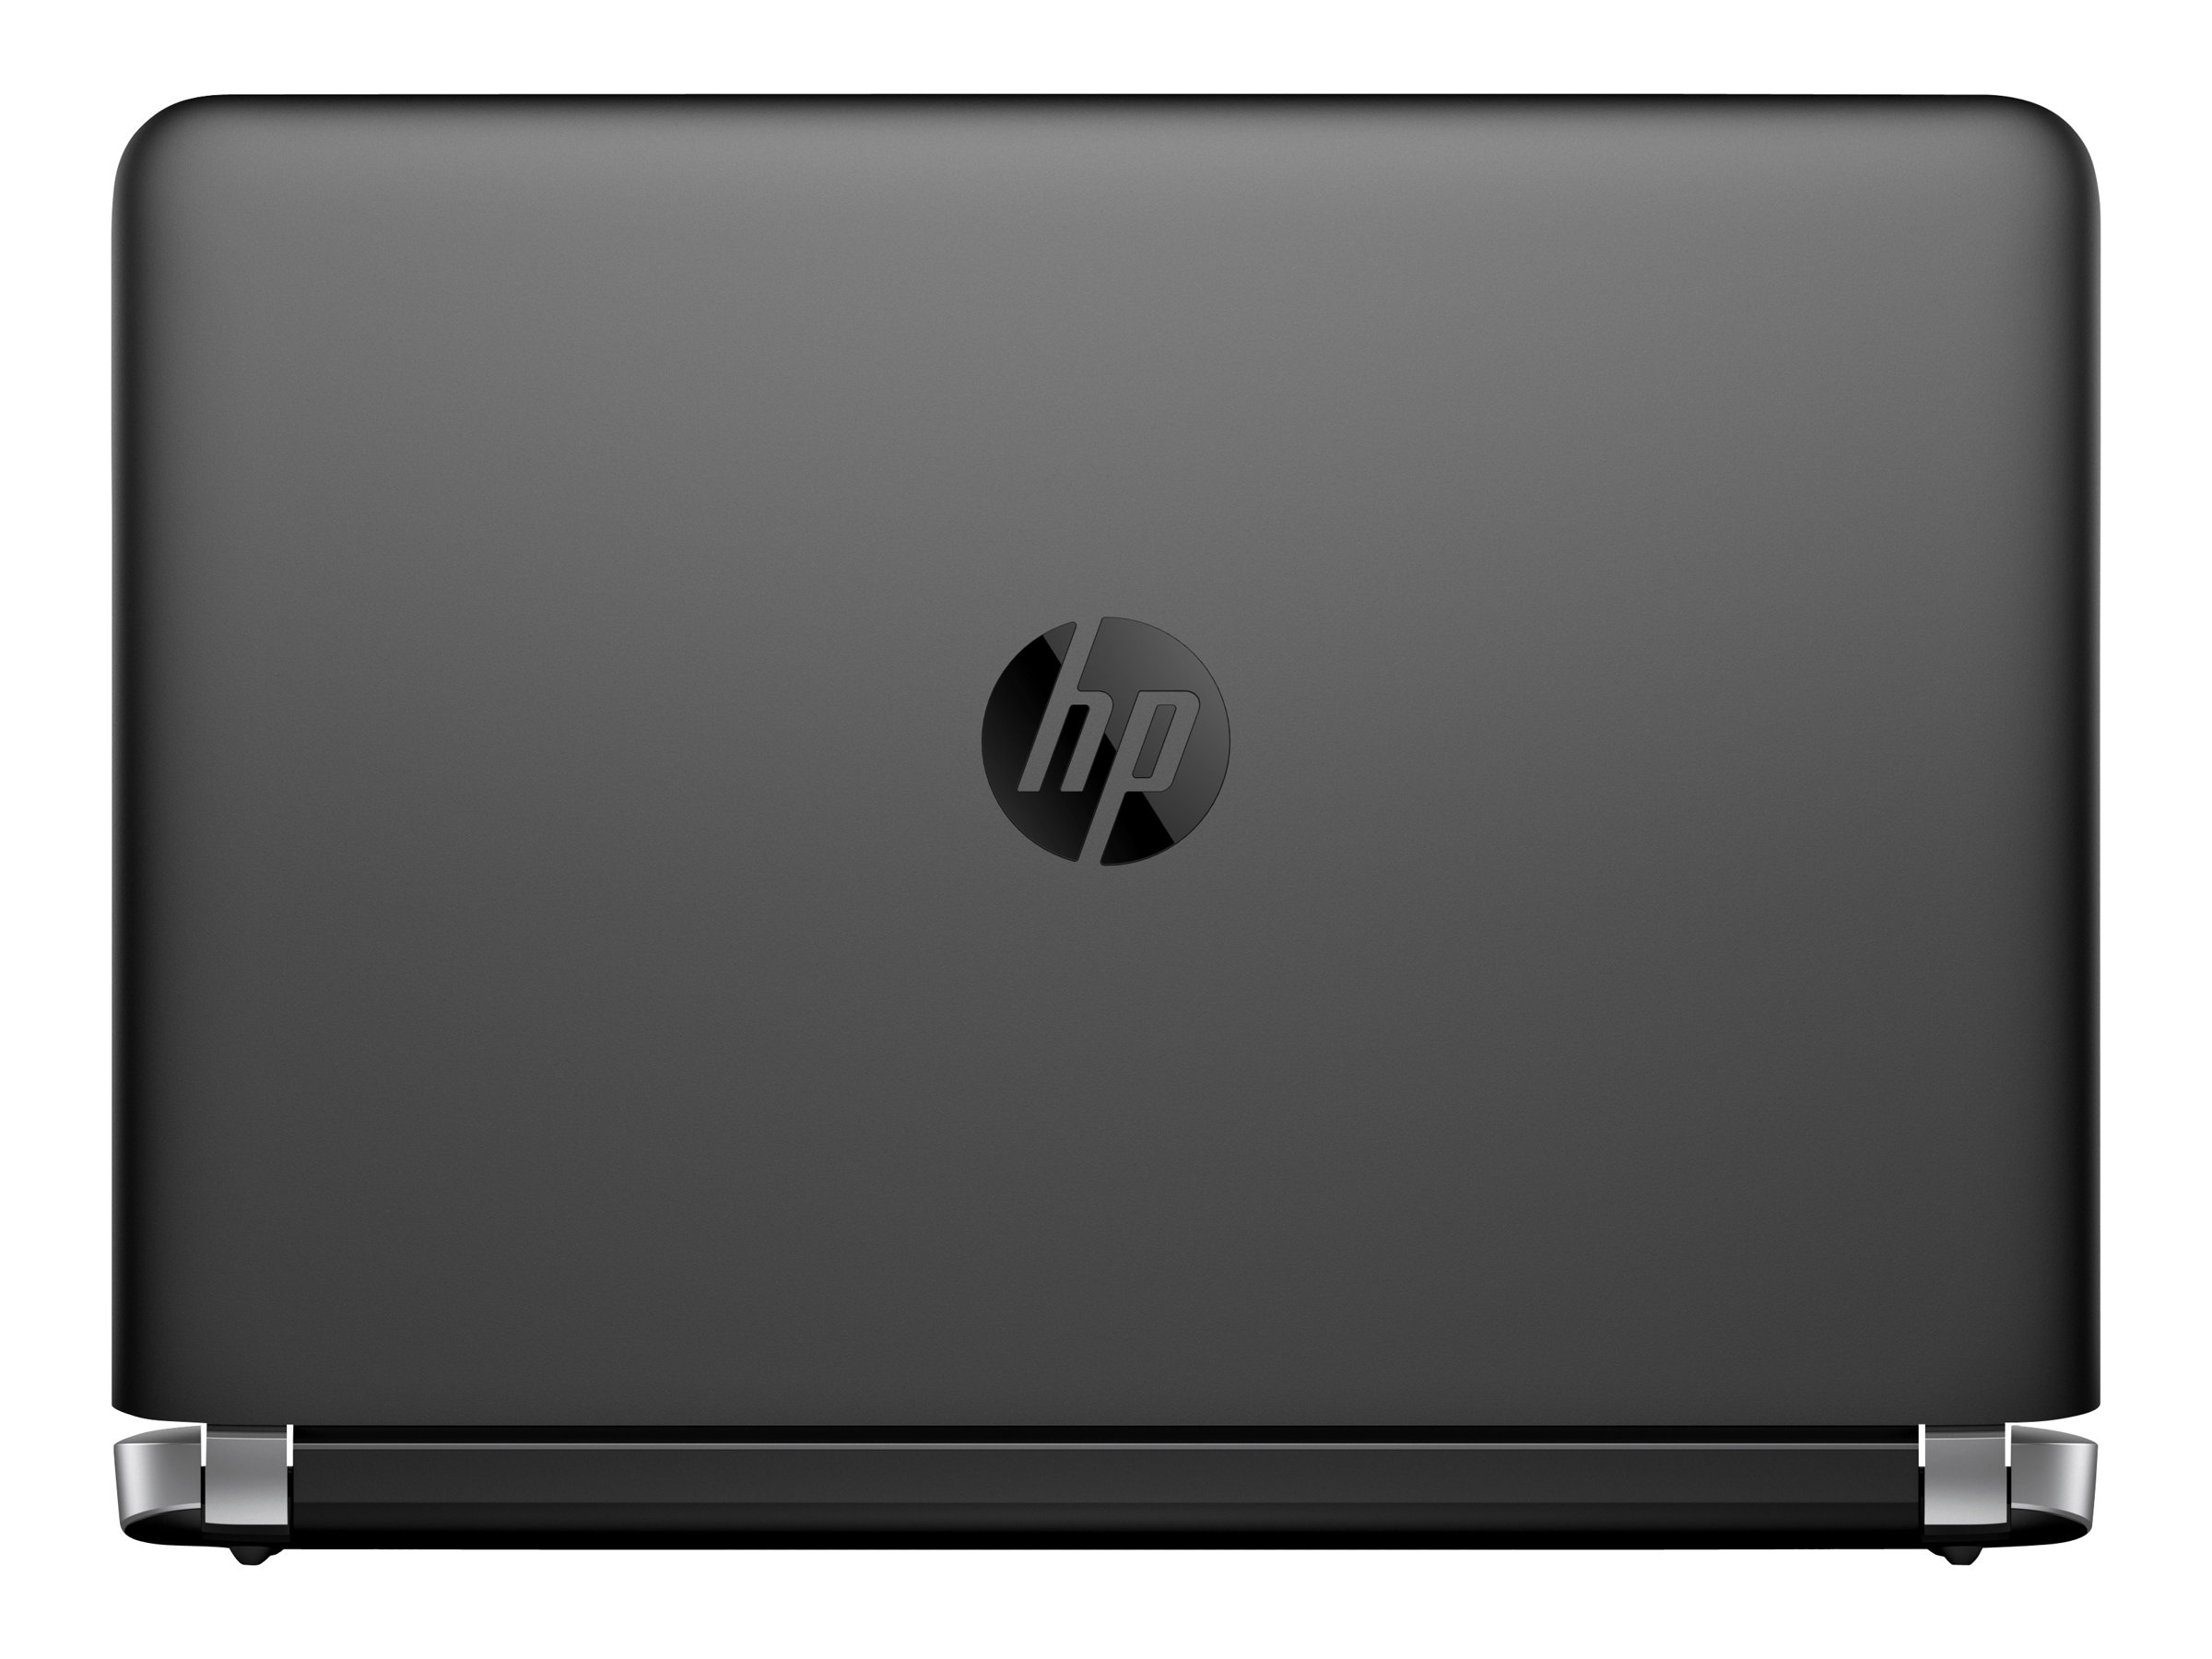 HP ProBook 440 G3 2.3GHz Core i5 14in display, W0S53UT#ABA